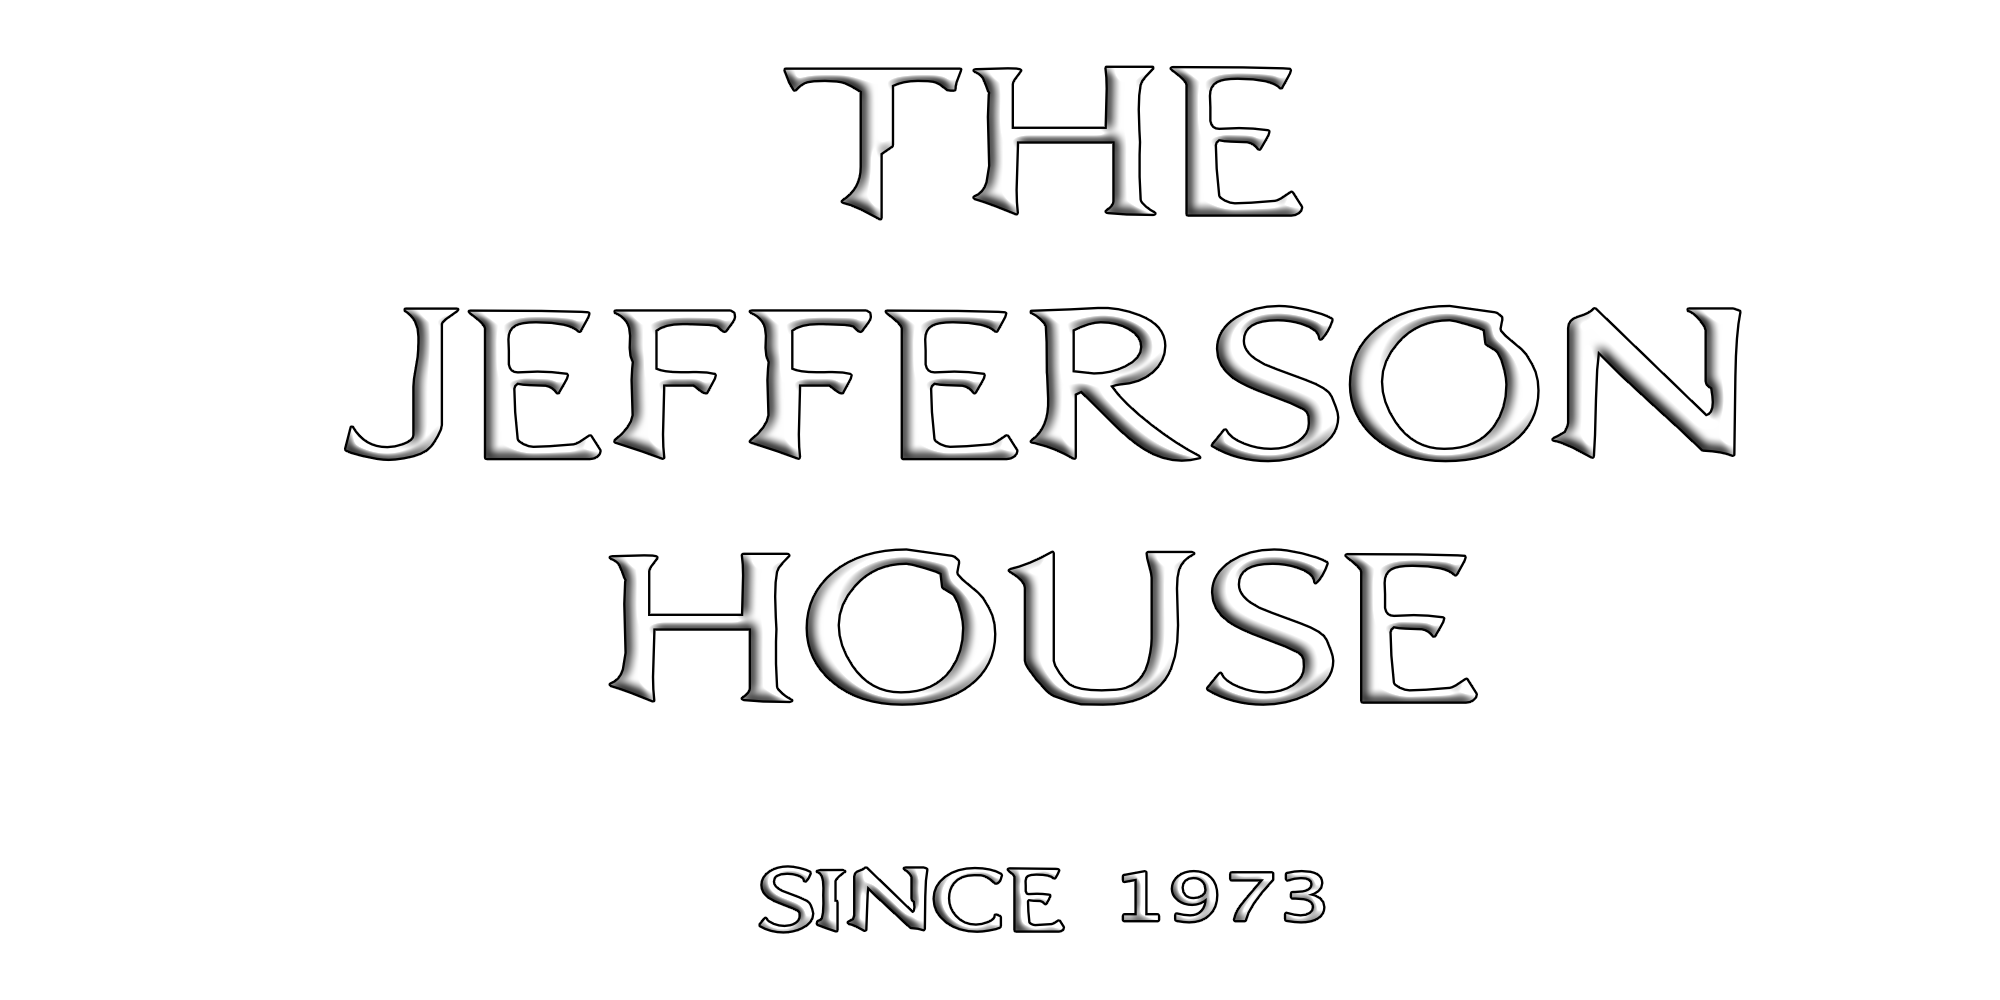 jefferson house logo a3.png